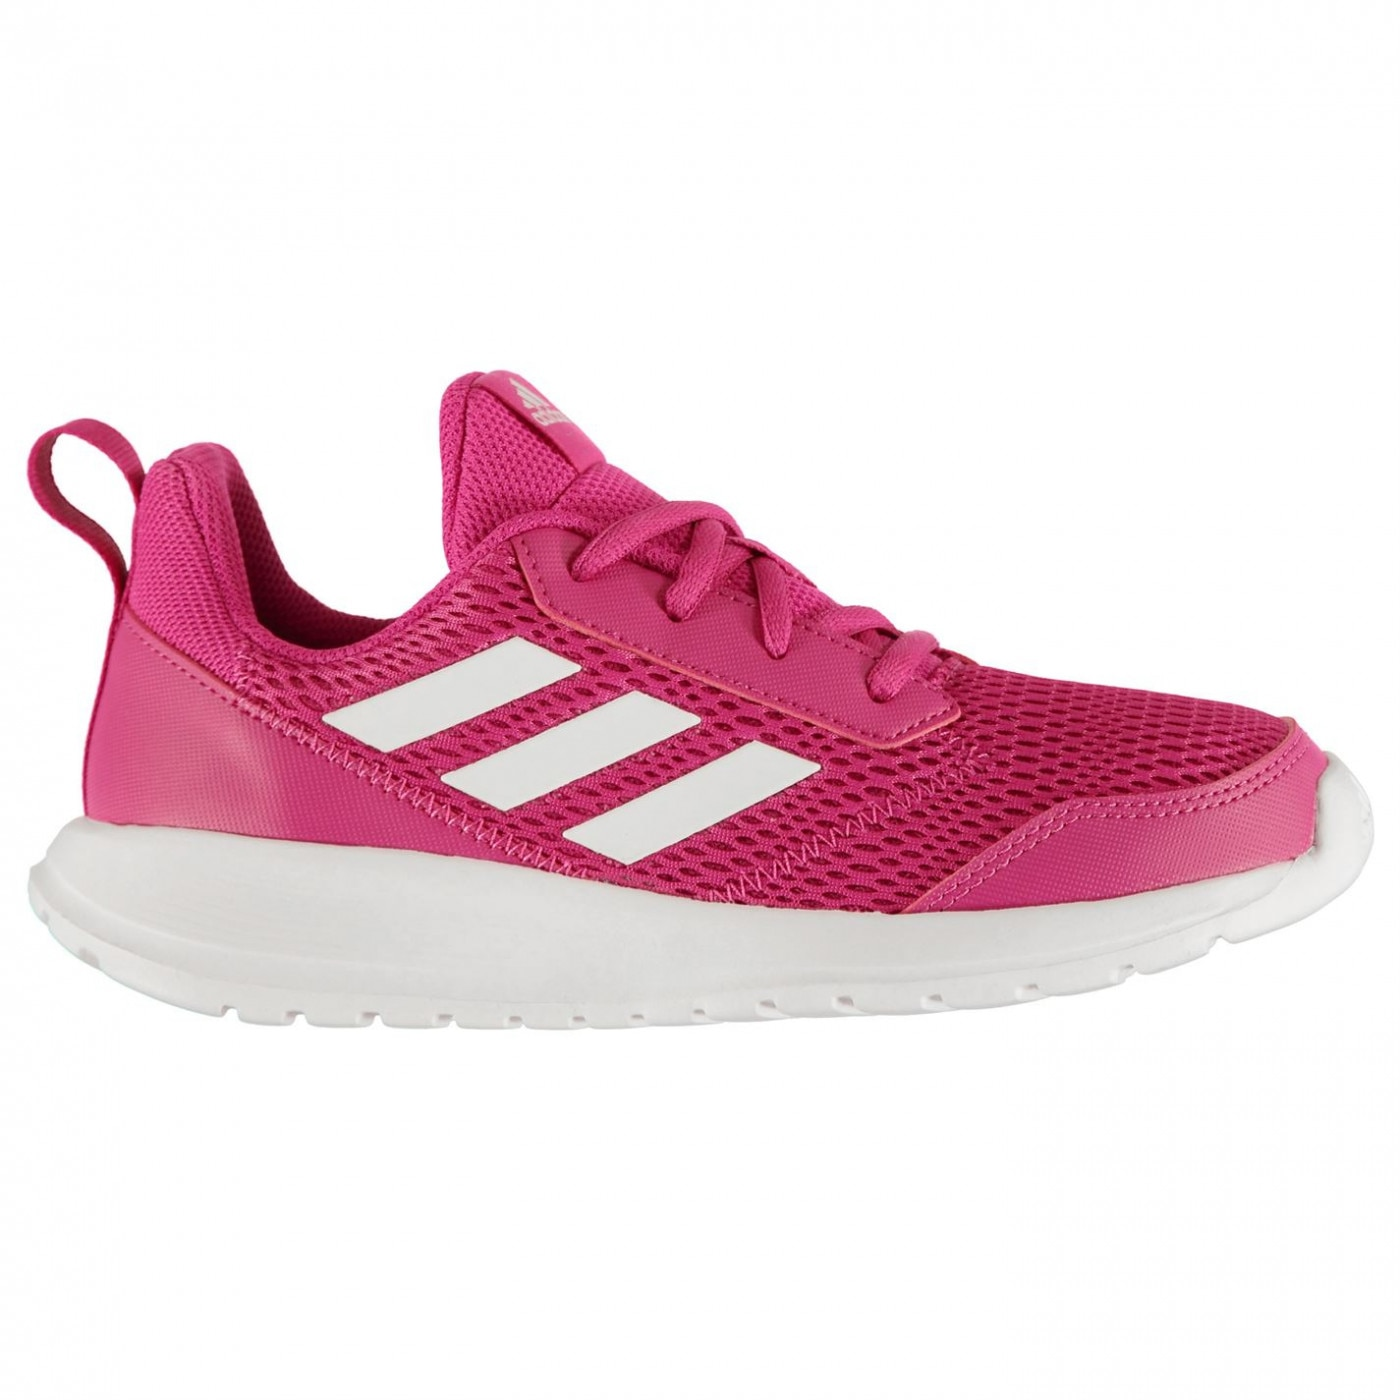 Adidas Alta Run Girls Trainers